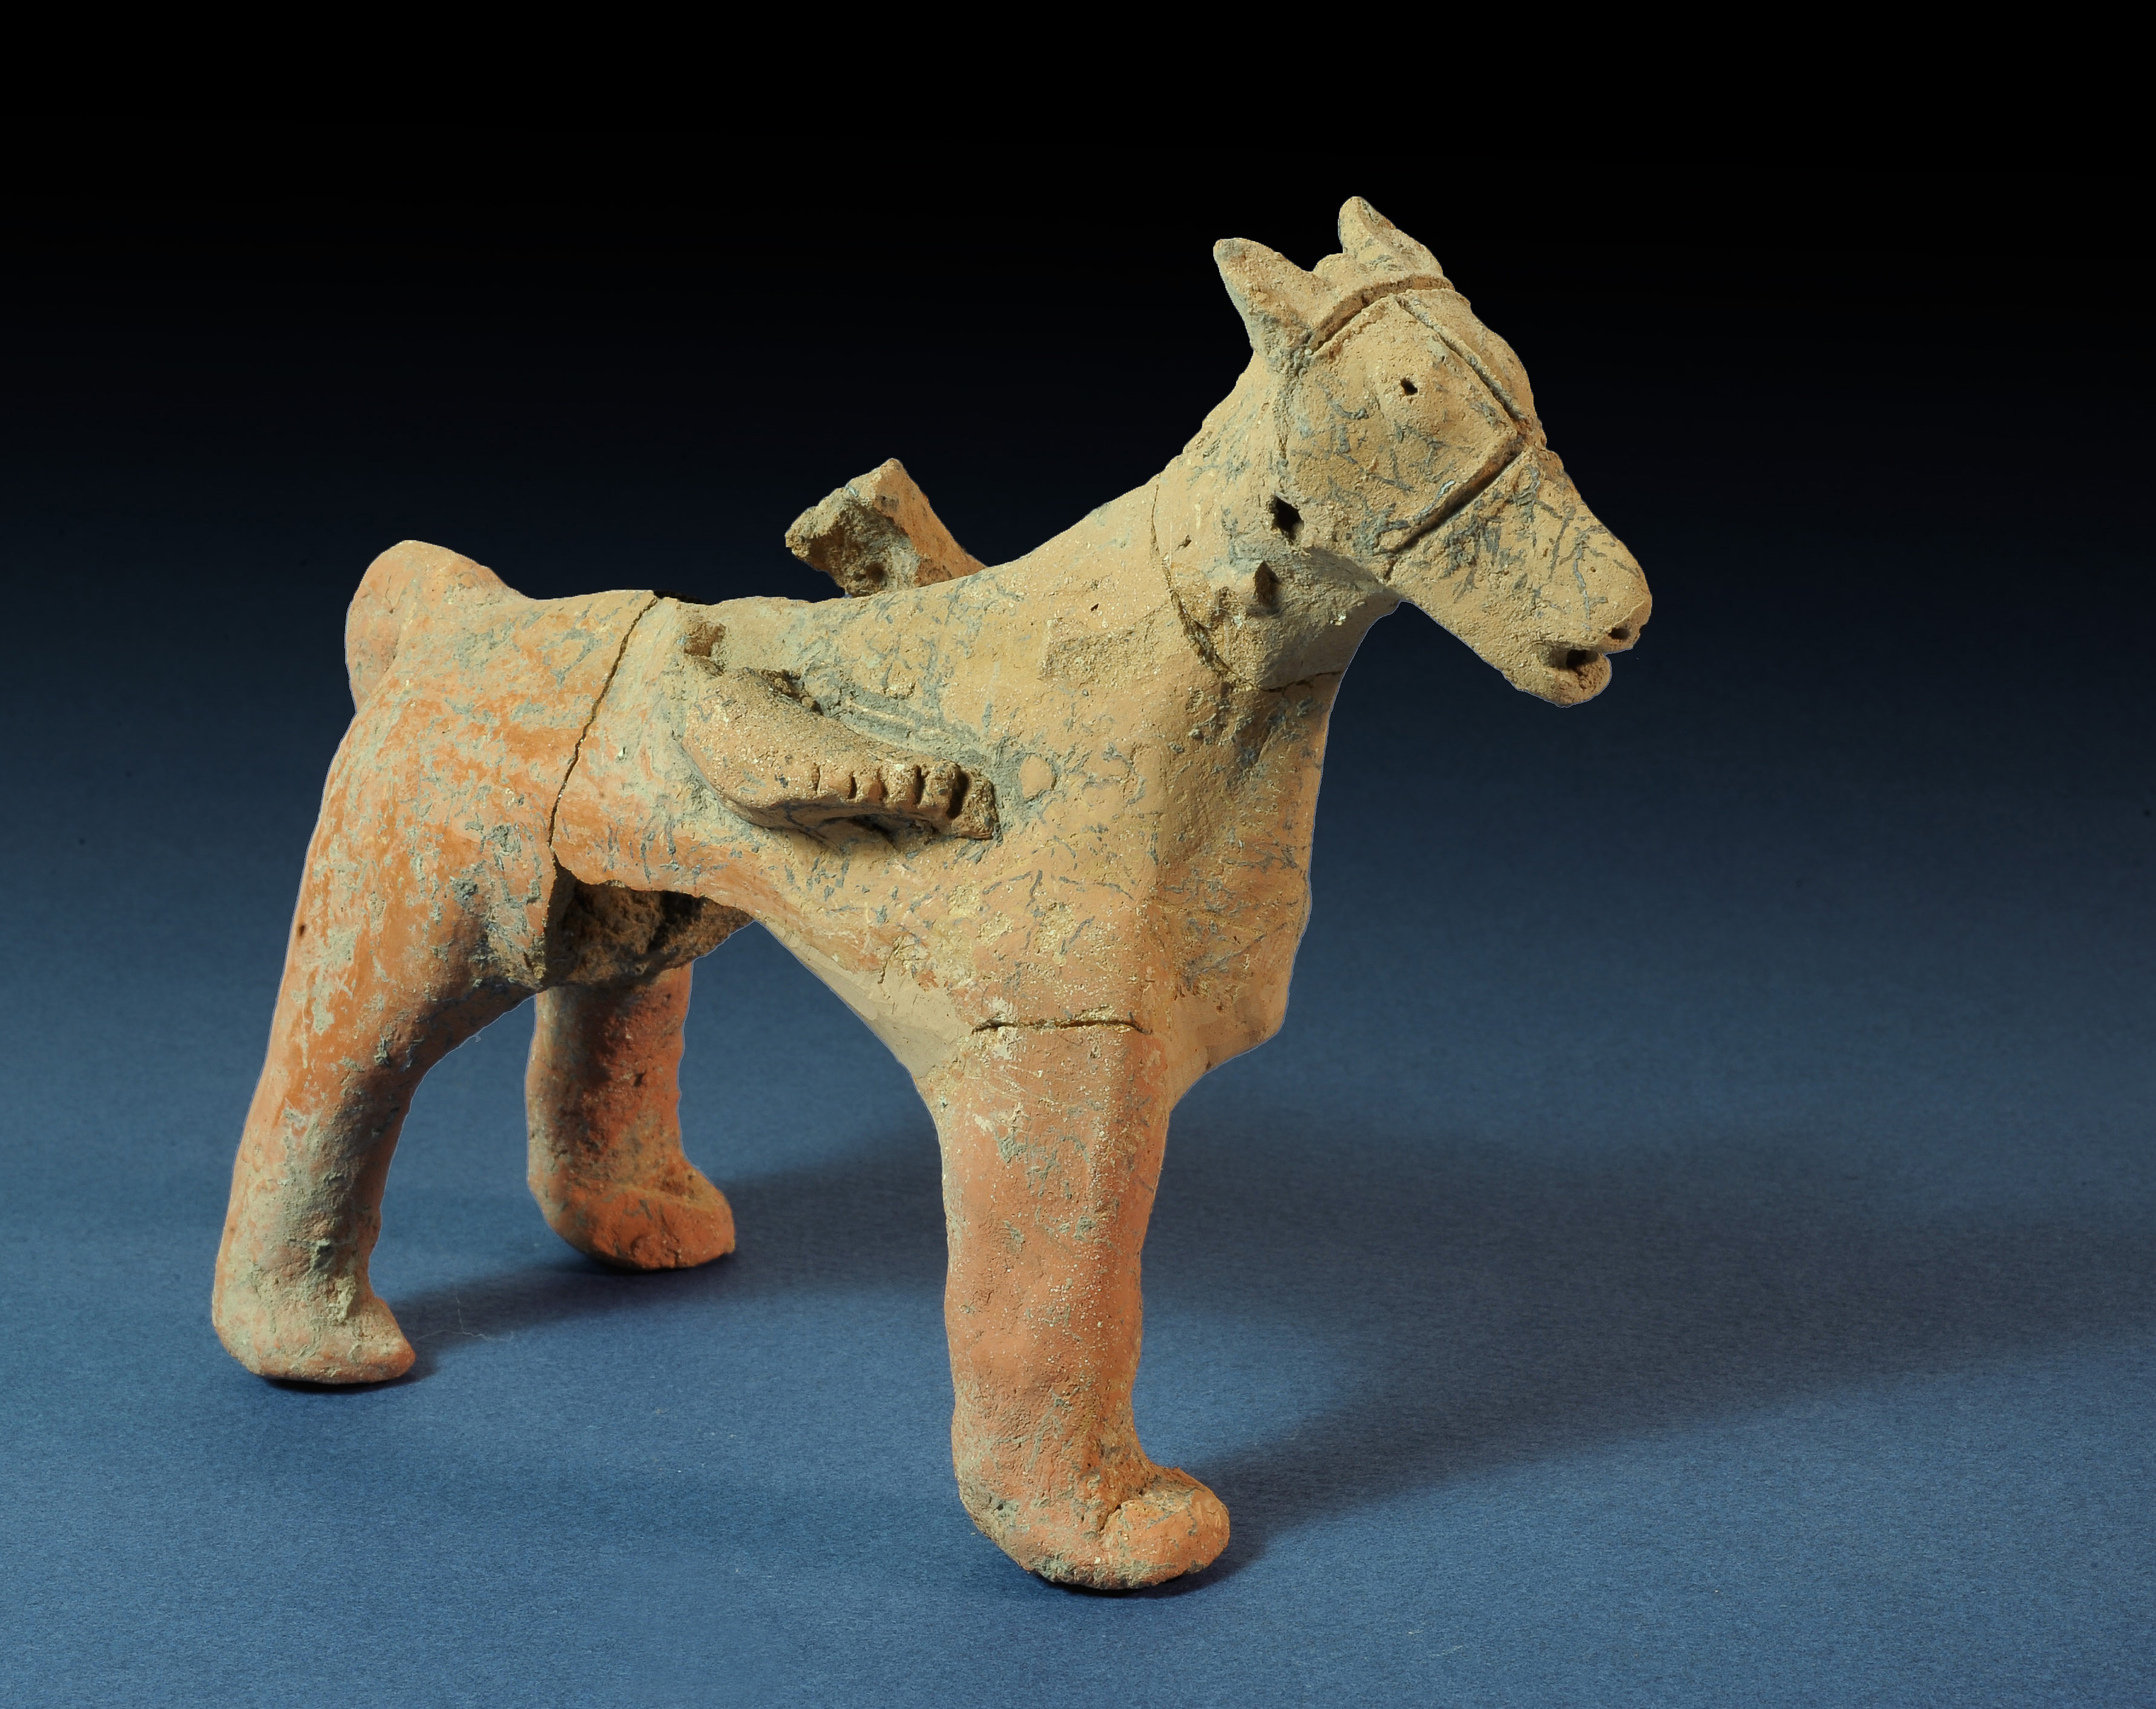 Figurine of a horse. Photograph: Clara Amit, courtesy of the Israel Antiquities Authority.